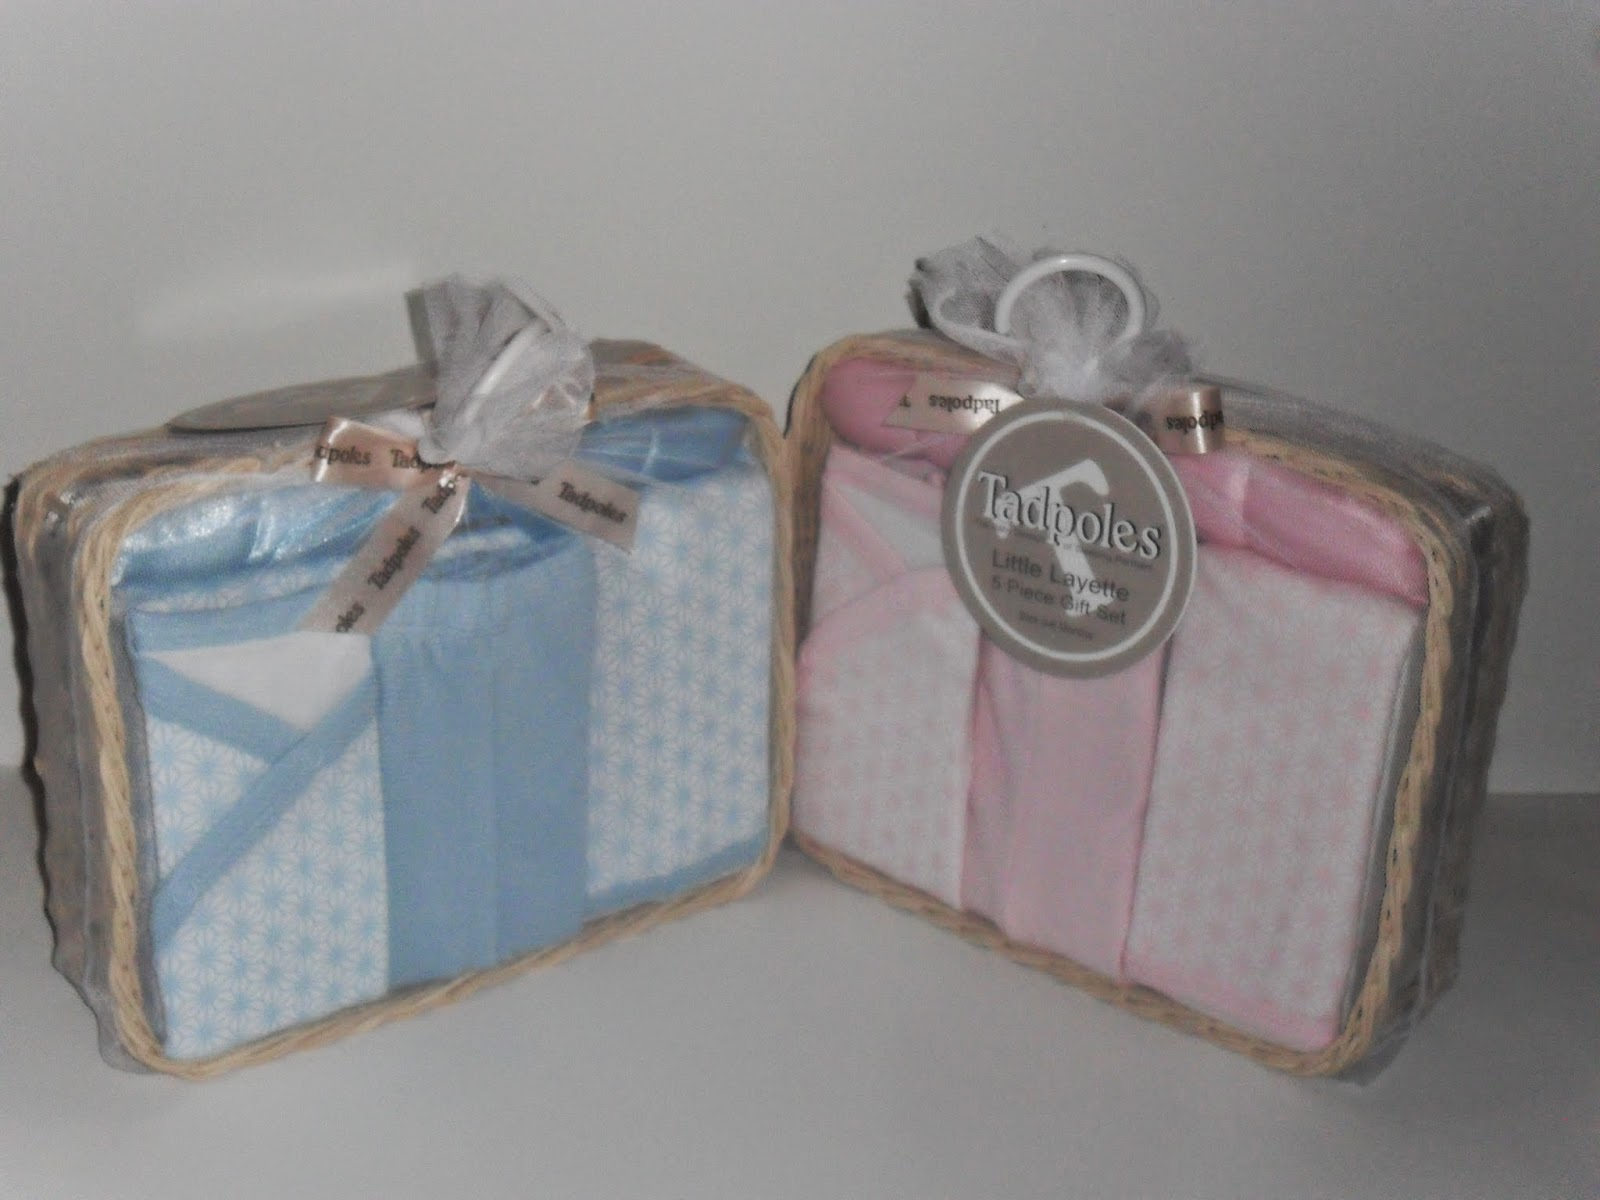 Tadpoles Layette Gift Sets. Review (Blu me away or Pink of me Event)